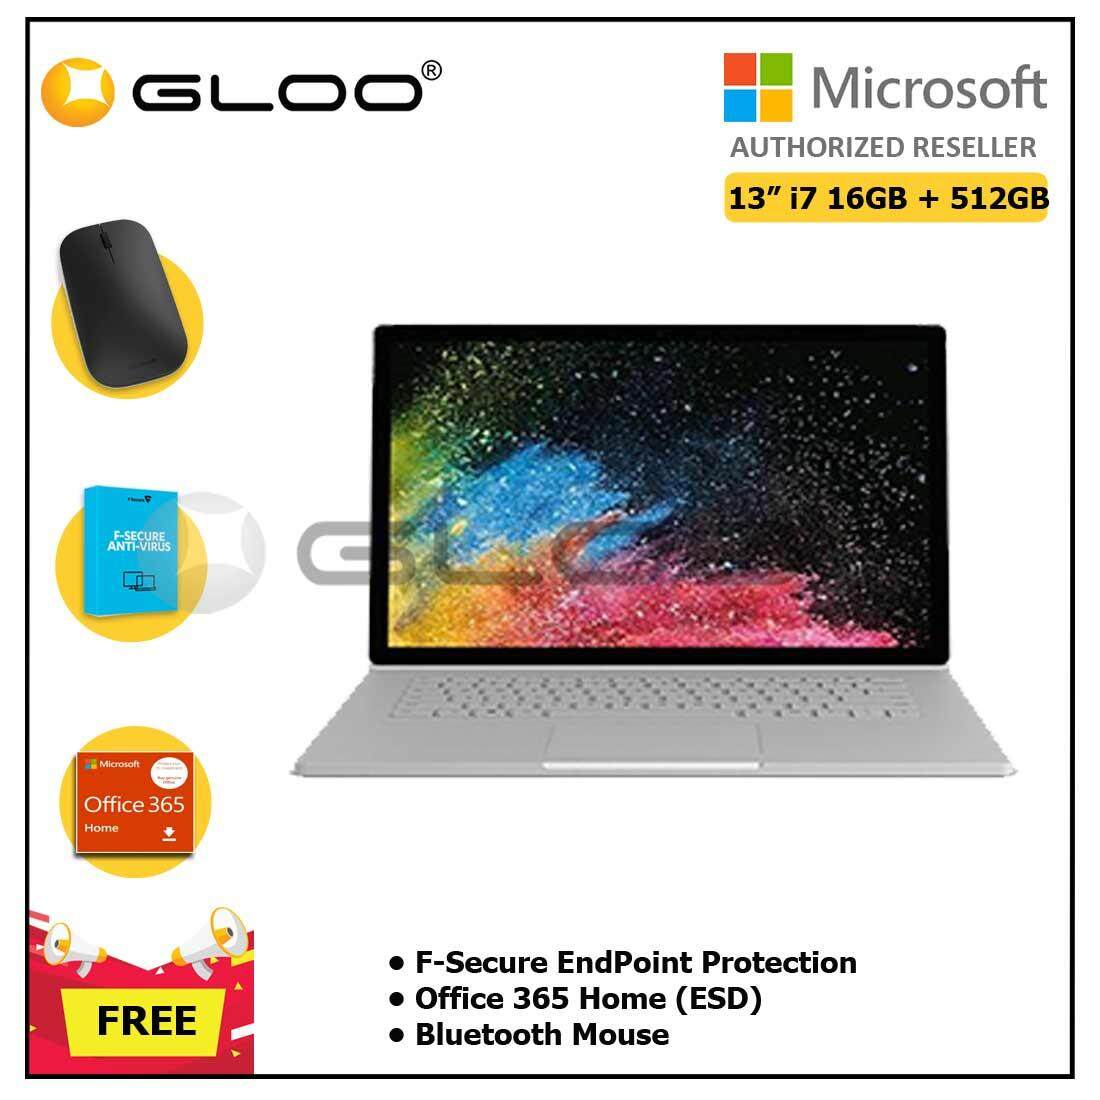 """Microsoft Surface Book 2 13"""" i7/16GB 512GB + F-Secure EndPoint Protection + Office 365 Home ESD + Bluetooth Mouse"""